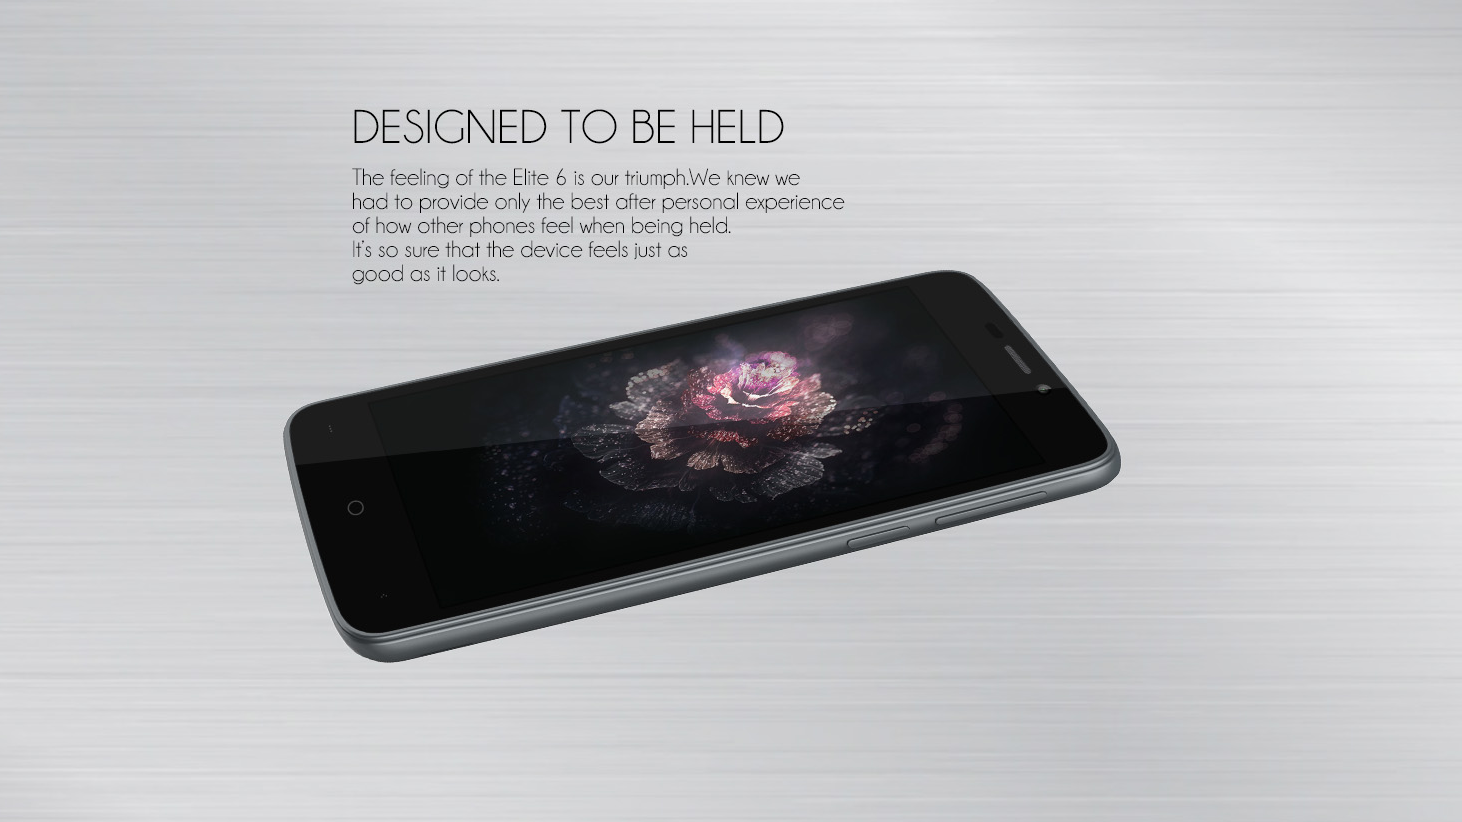 Leagoo Elite 6 Promo picture, black colored phone showing its design on a silver background.